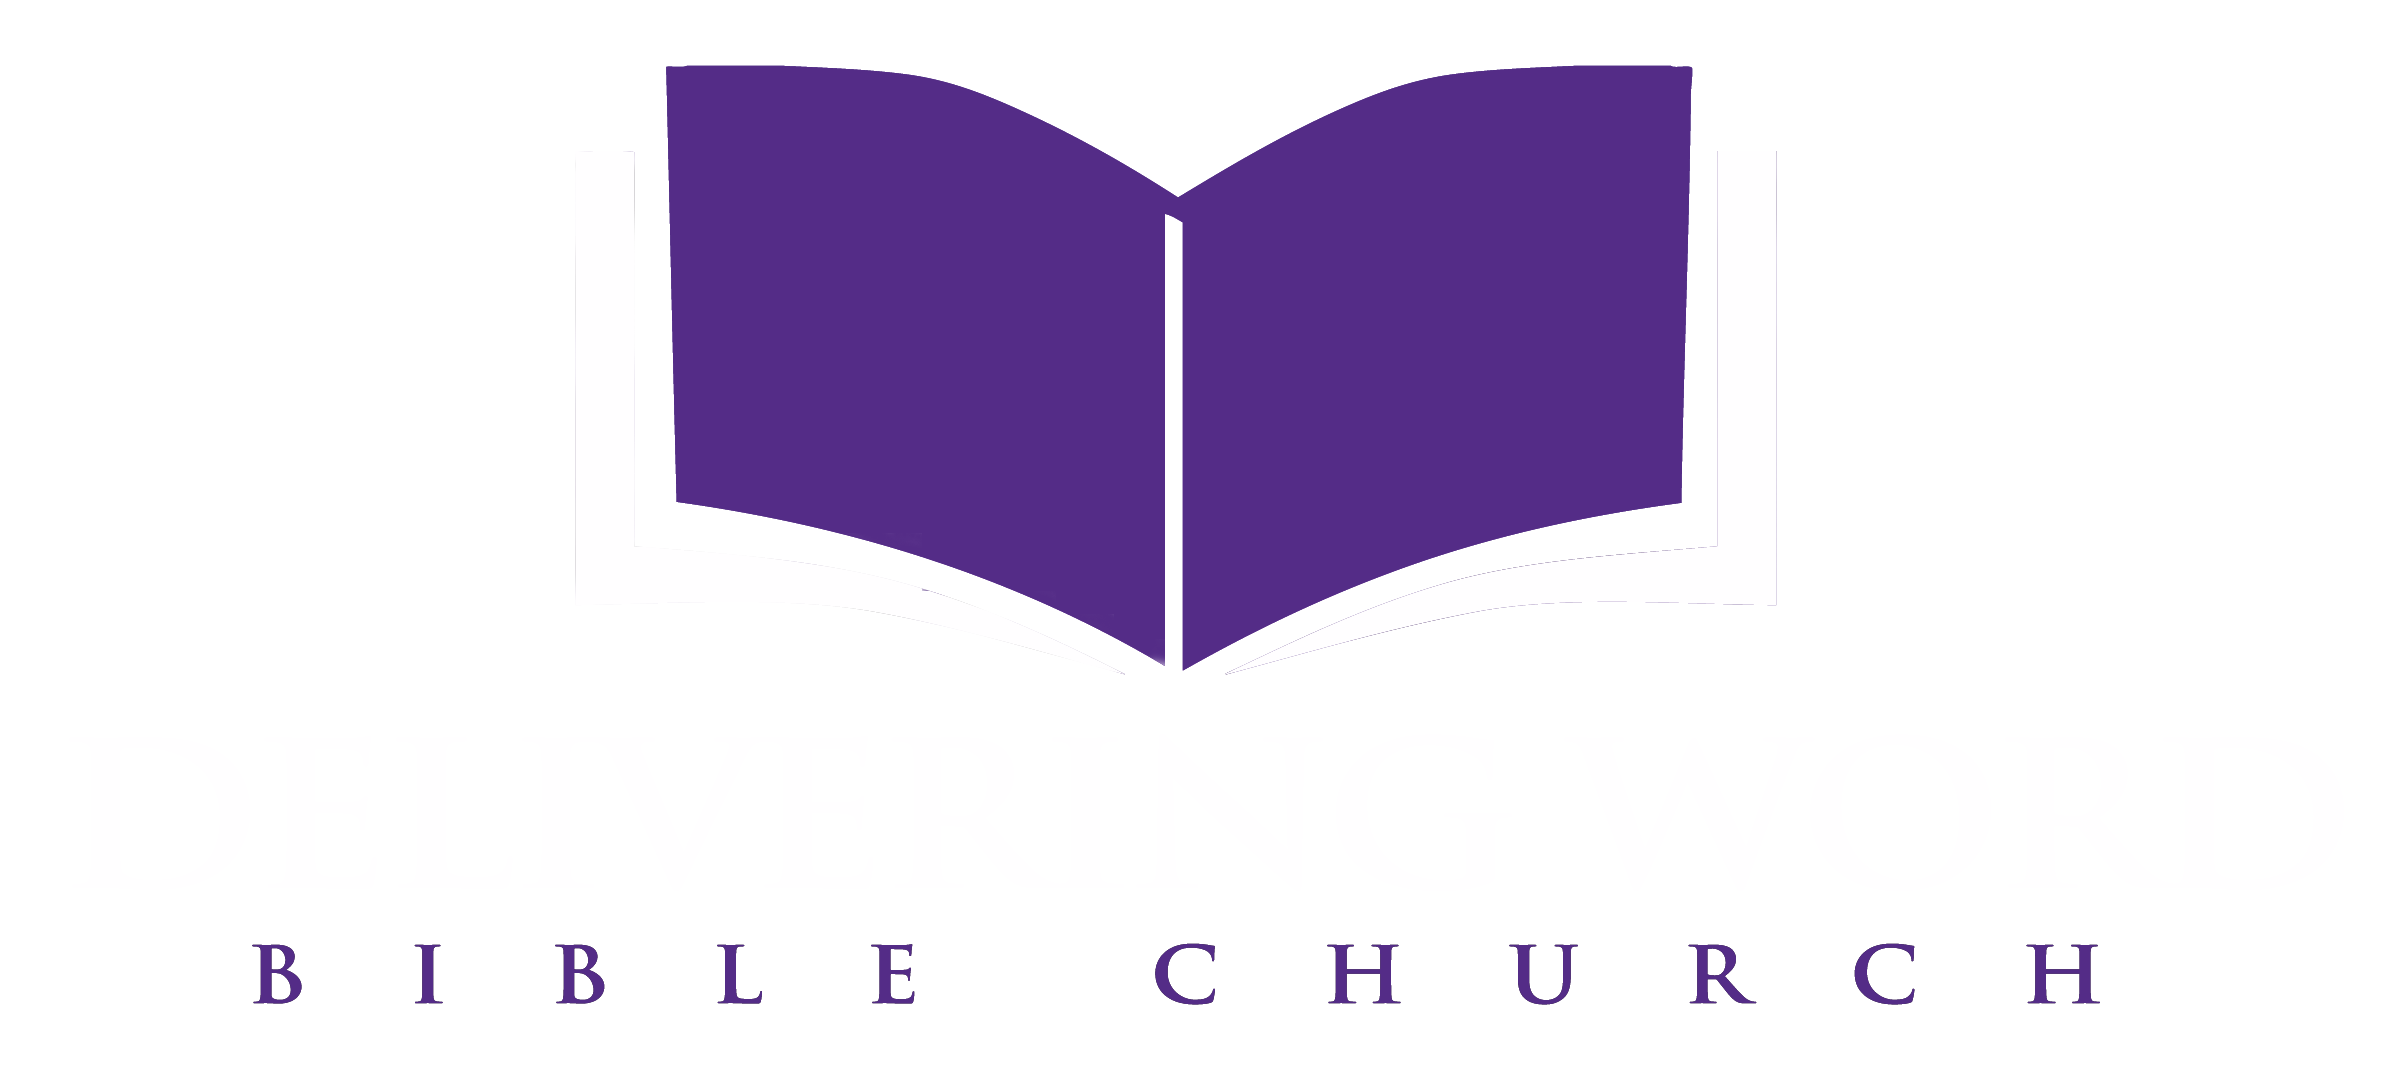 Delivering Word OFFICIAL Logo-01 copy2.png